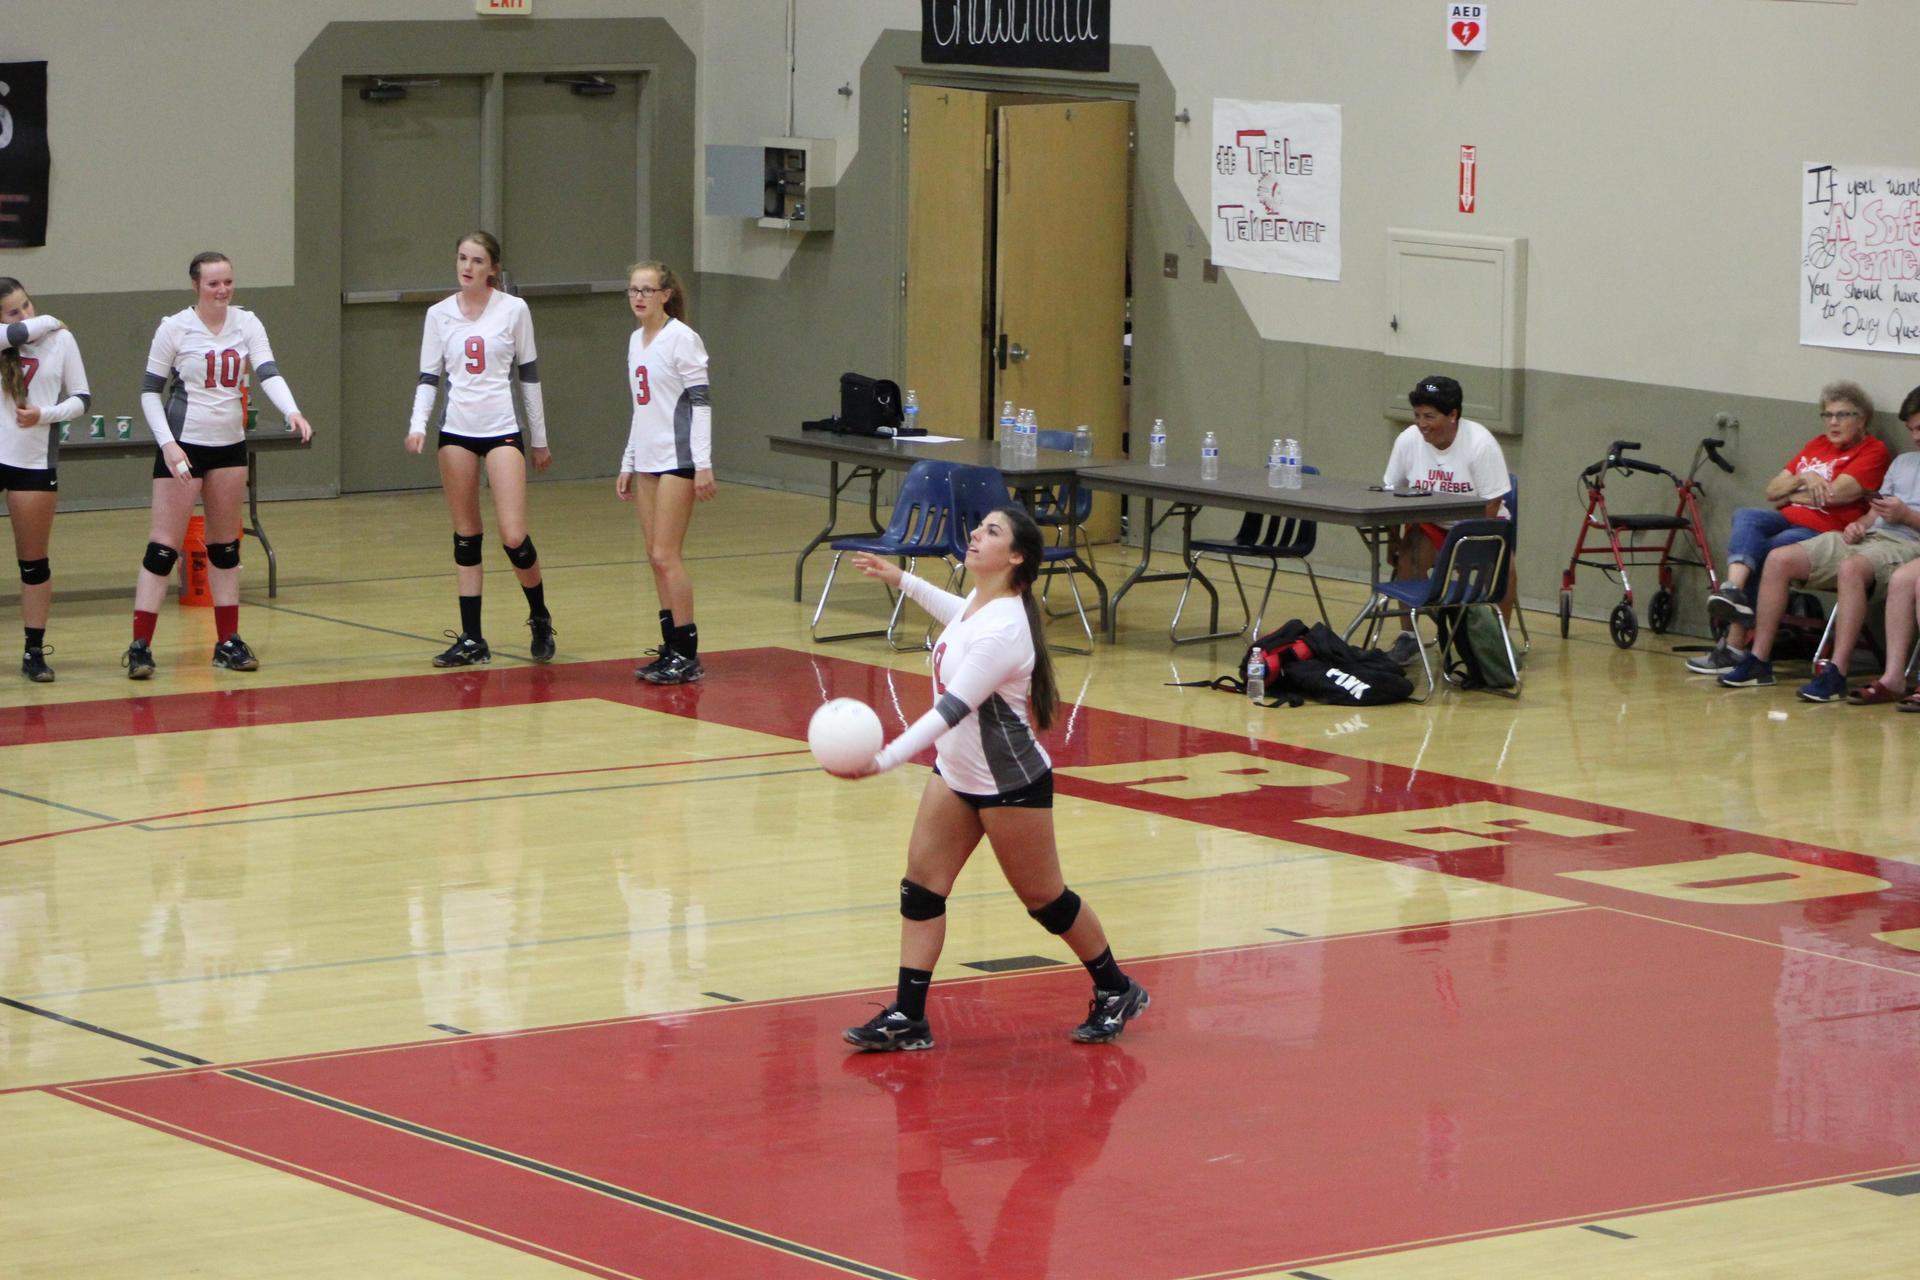 Girls playing volleyball against Yosemite